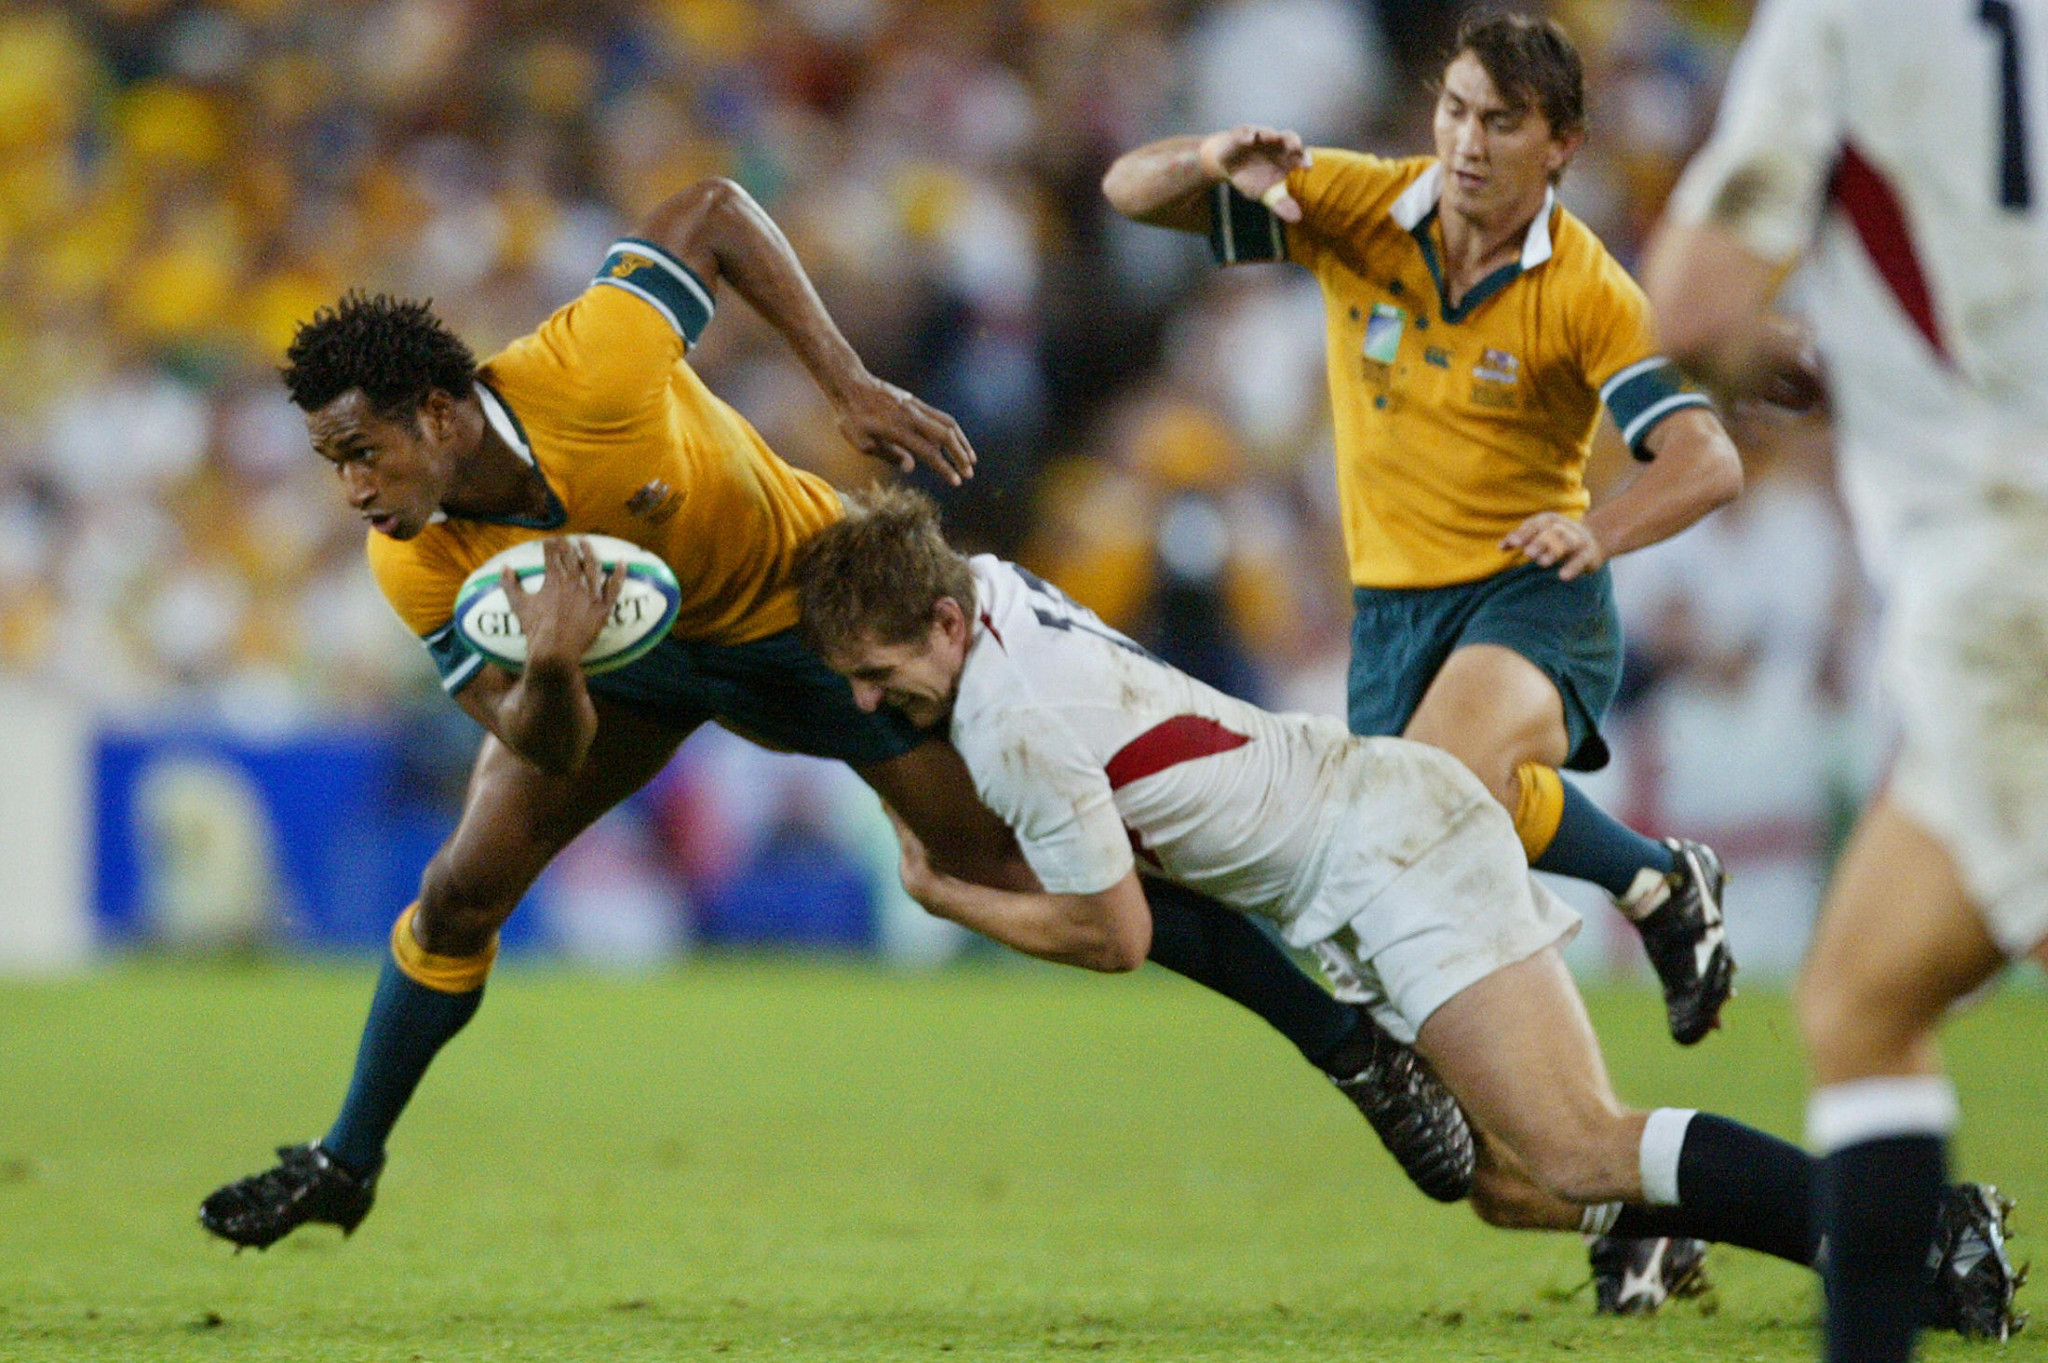 Australia hosted the 2003 Rugby World Cup ©Getty Images